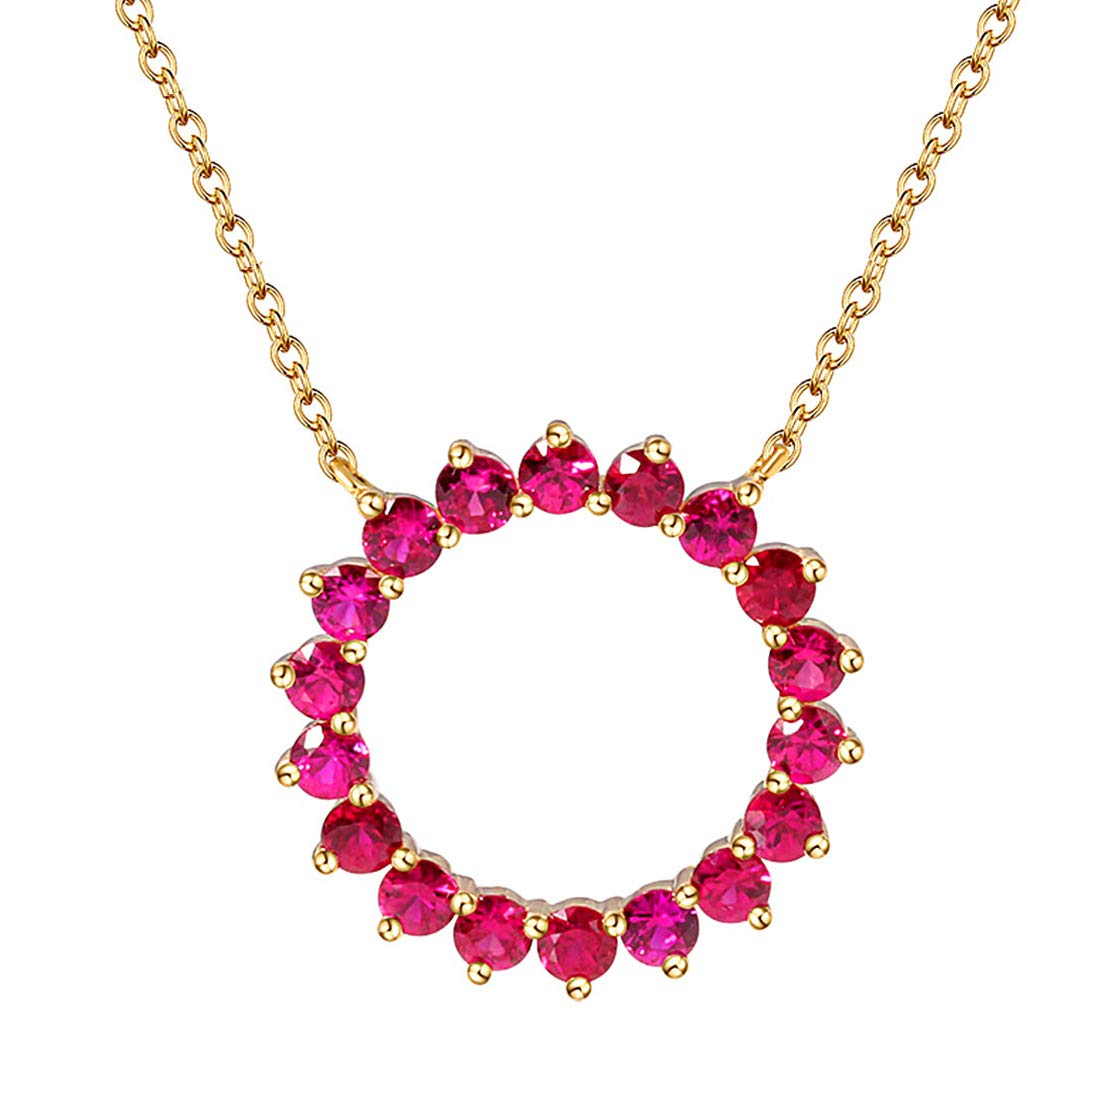 FANCIME 14K Real Solid White/Yellow Gold Natural Blue Sapphire/Ruby Round Circle Necklace July/September Birthstone Minimalism Fine Jewelry for Women